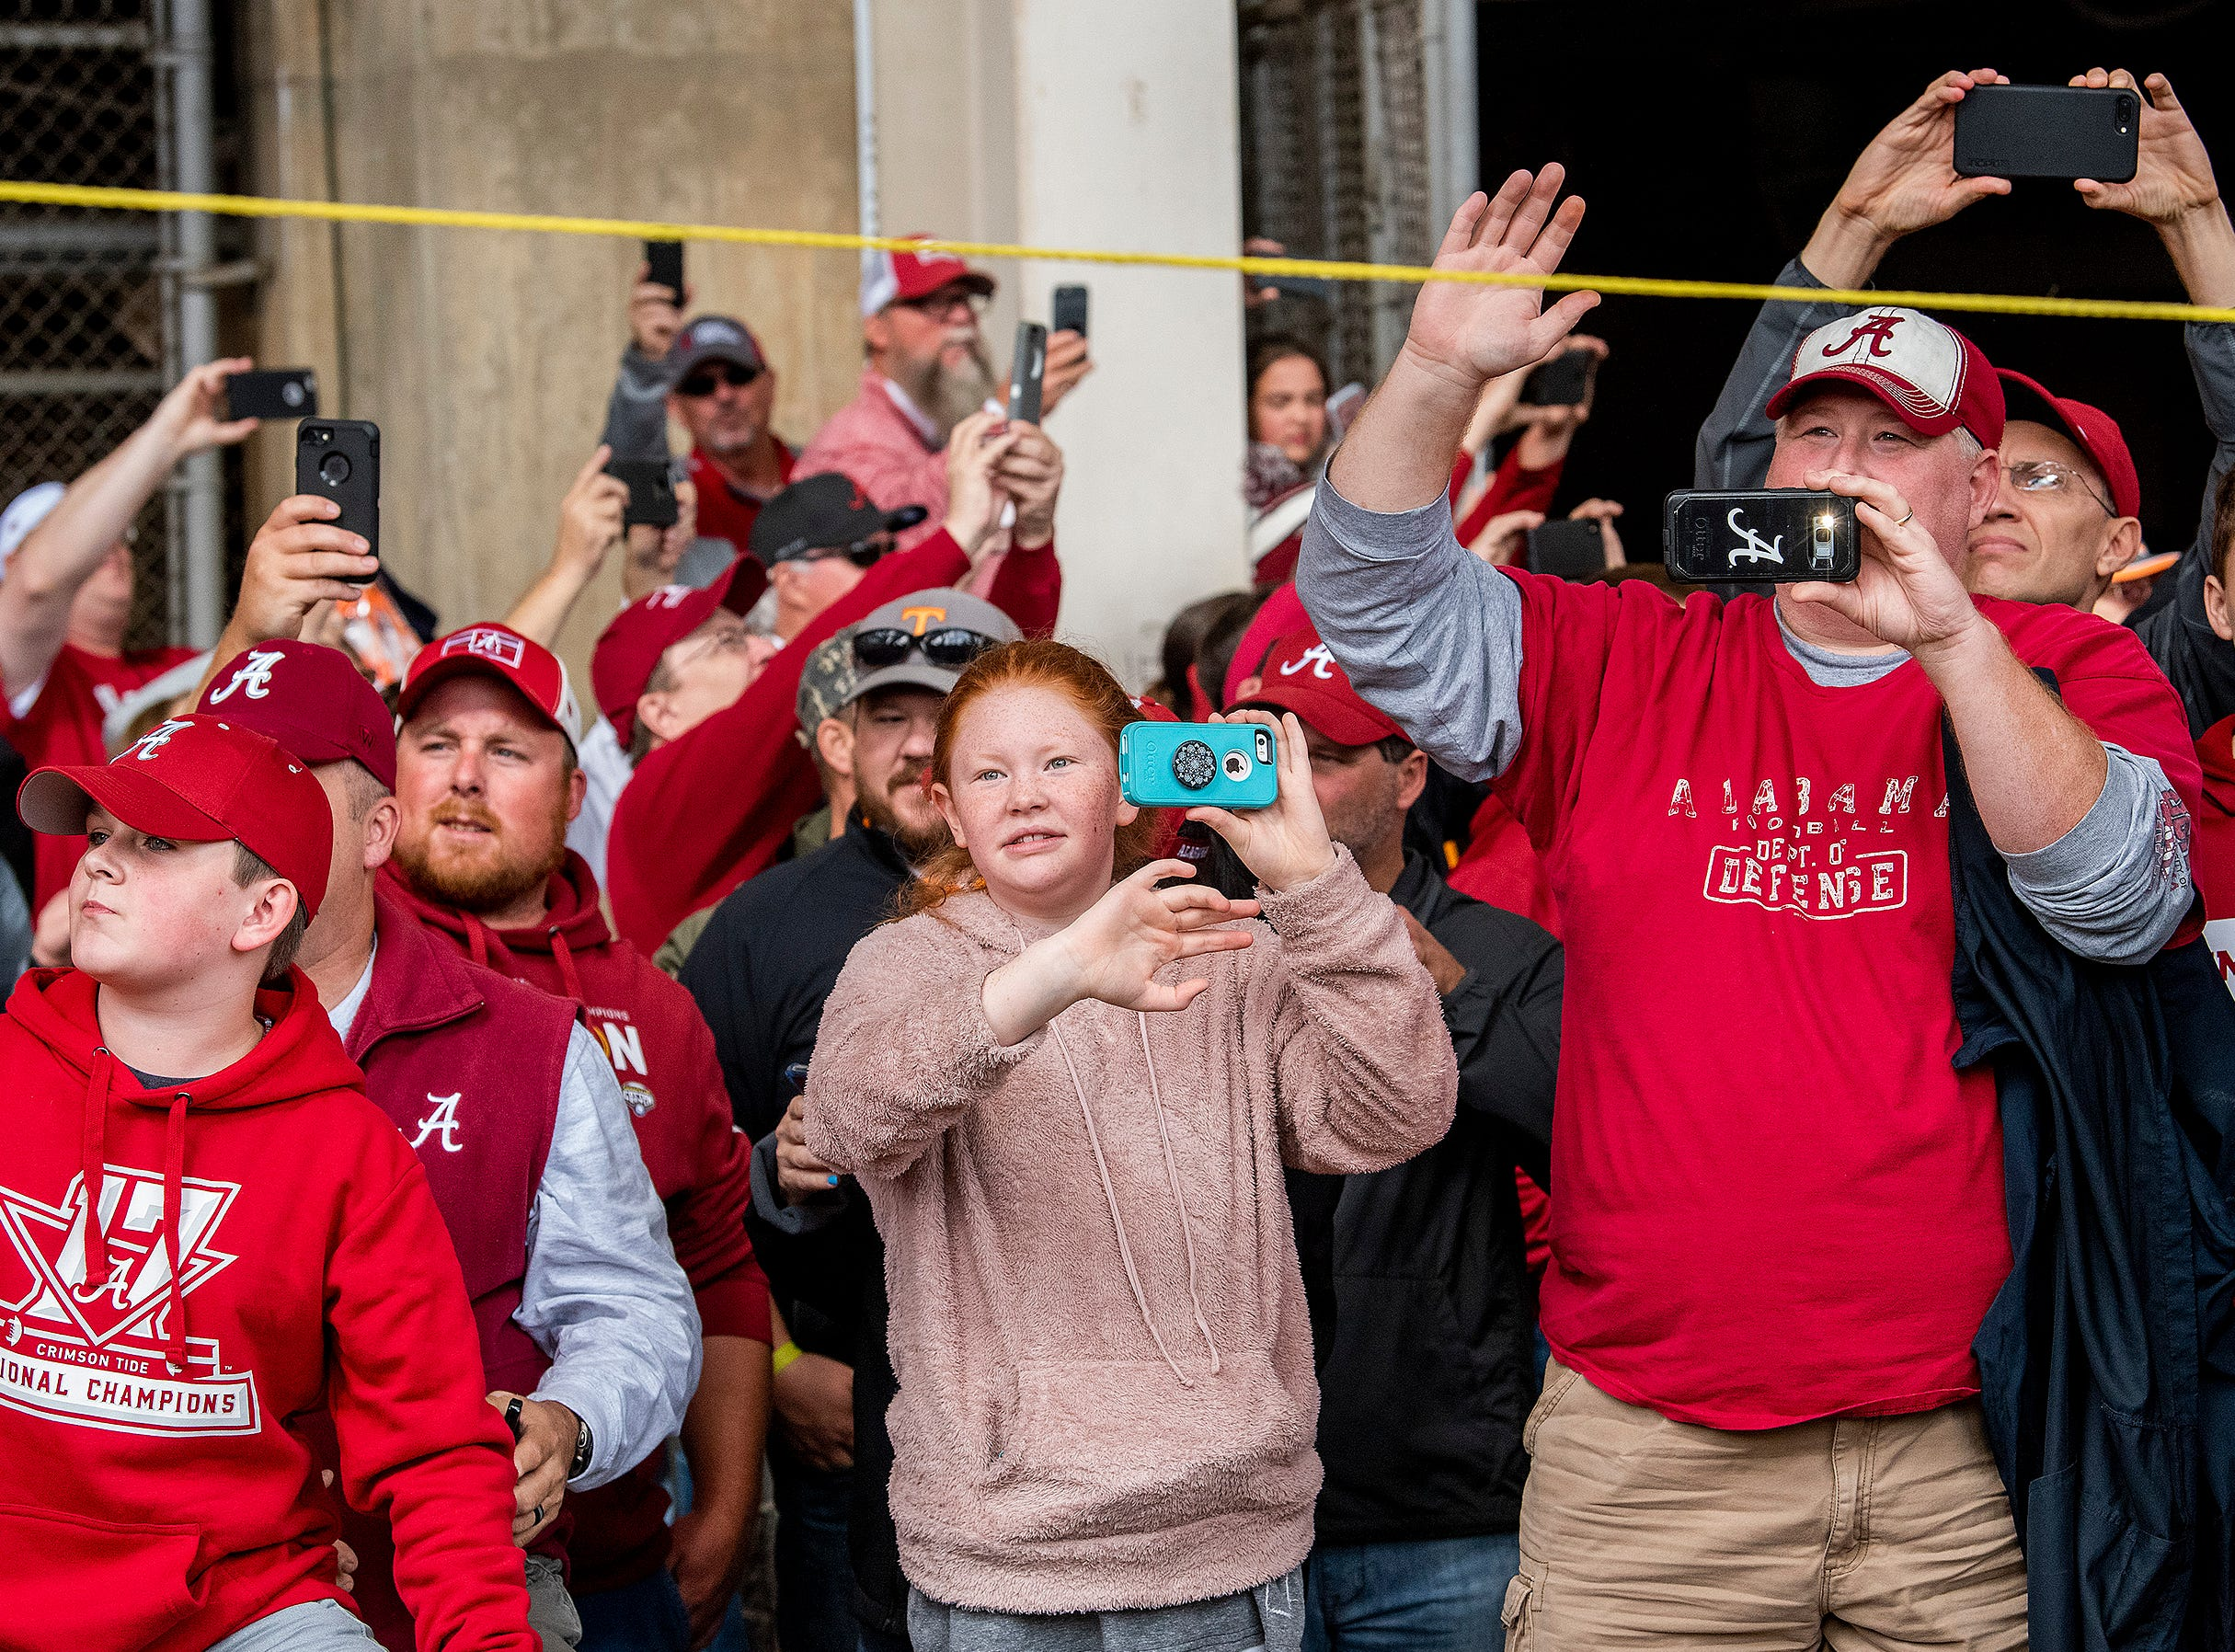 Alabama fans wave as Alabama arrives for the Tennessee game at Neyland Stadium in Knoxville, Tn., on Saturday October 20, 2018.